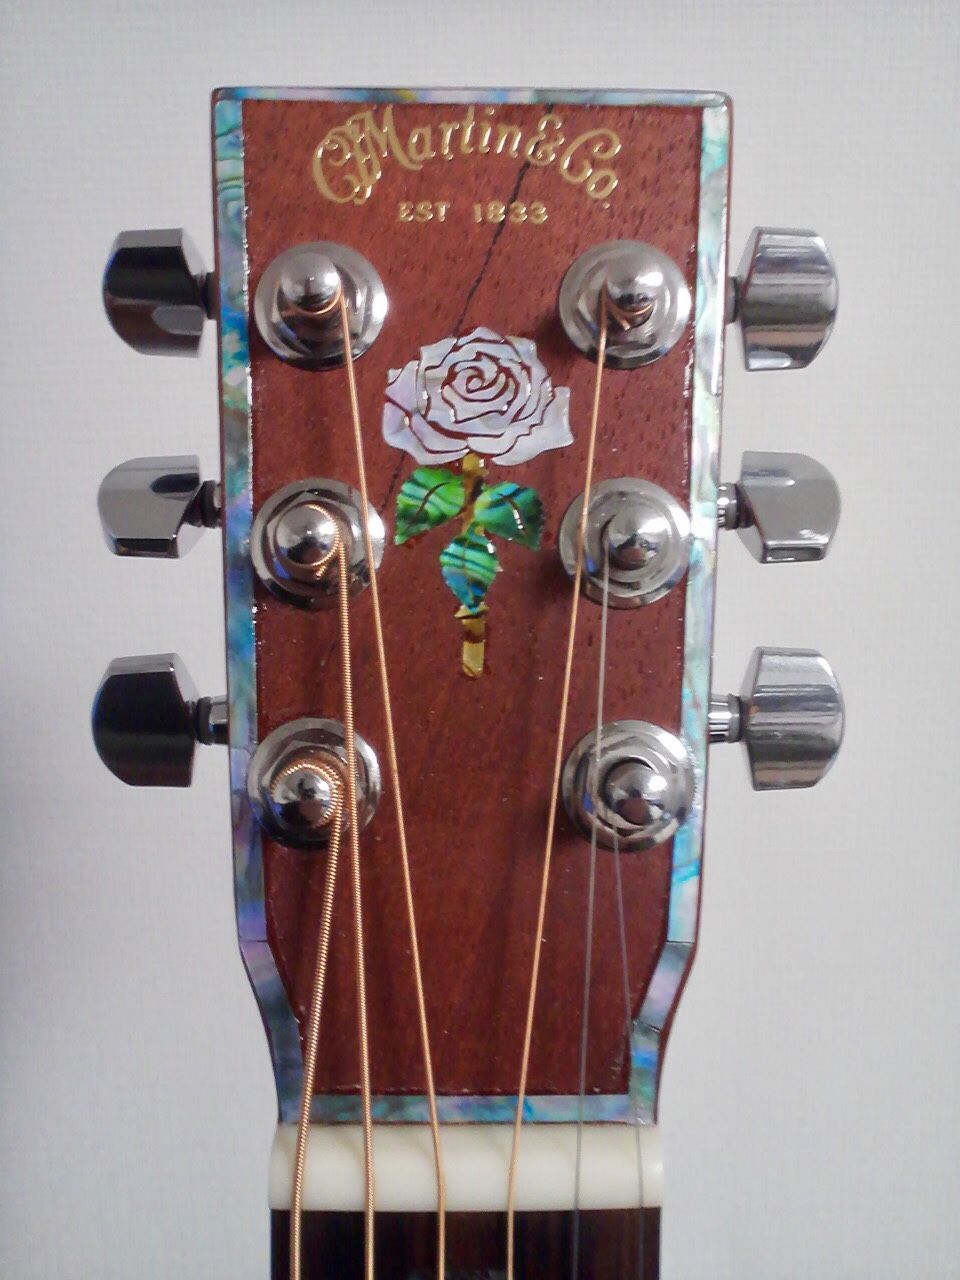 Rosanne cash rose inlaysticker and sticks abalone mixed inlay stickers decals for